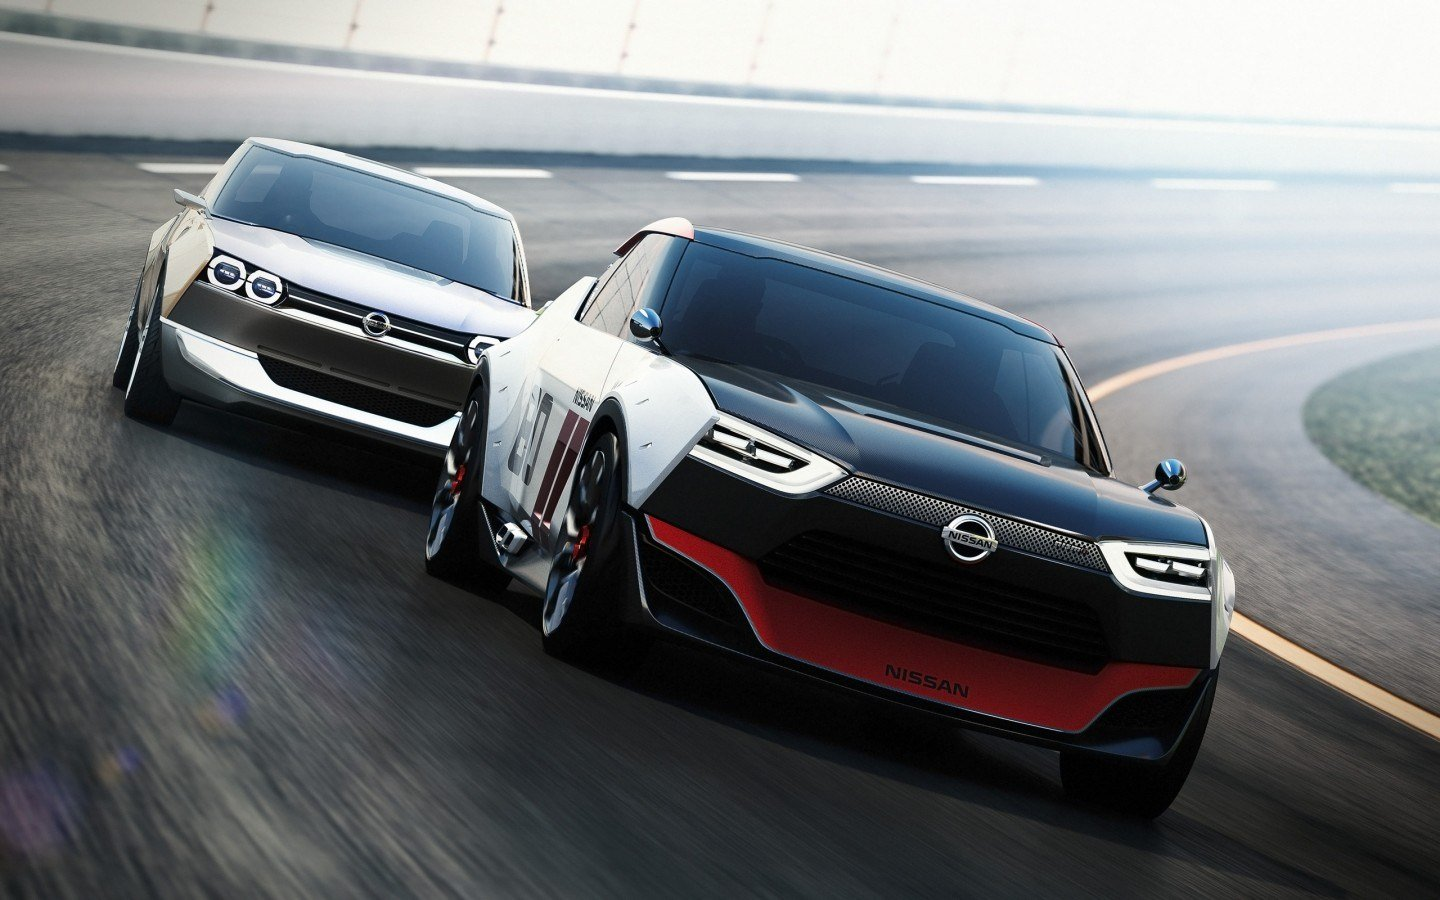 Latest 2013 Nissan Idx Nismo Wallpaper Hd Car Wallpapers Id 3927 Free Download